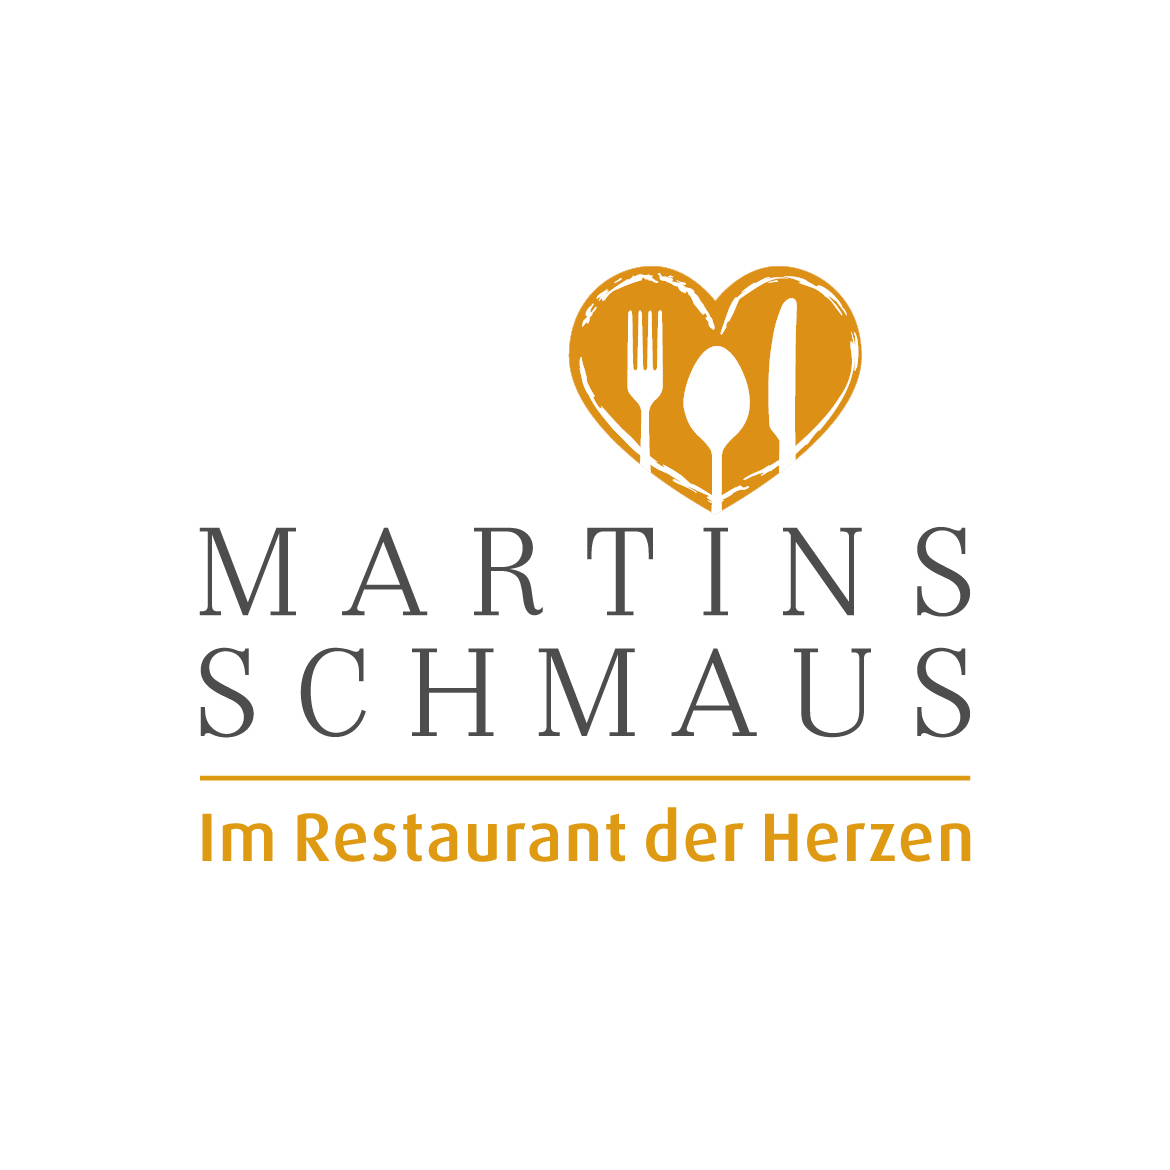 Referenz Martinsschmaus Logodesign